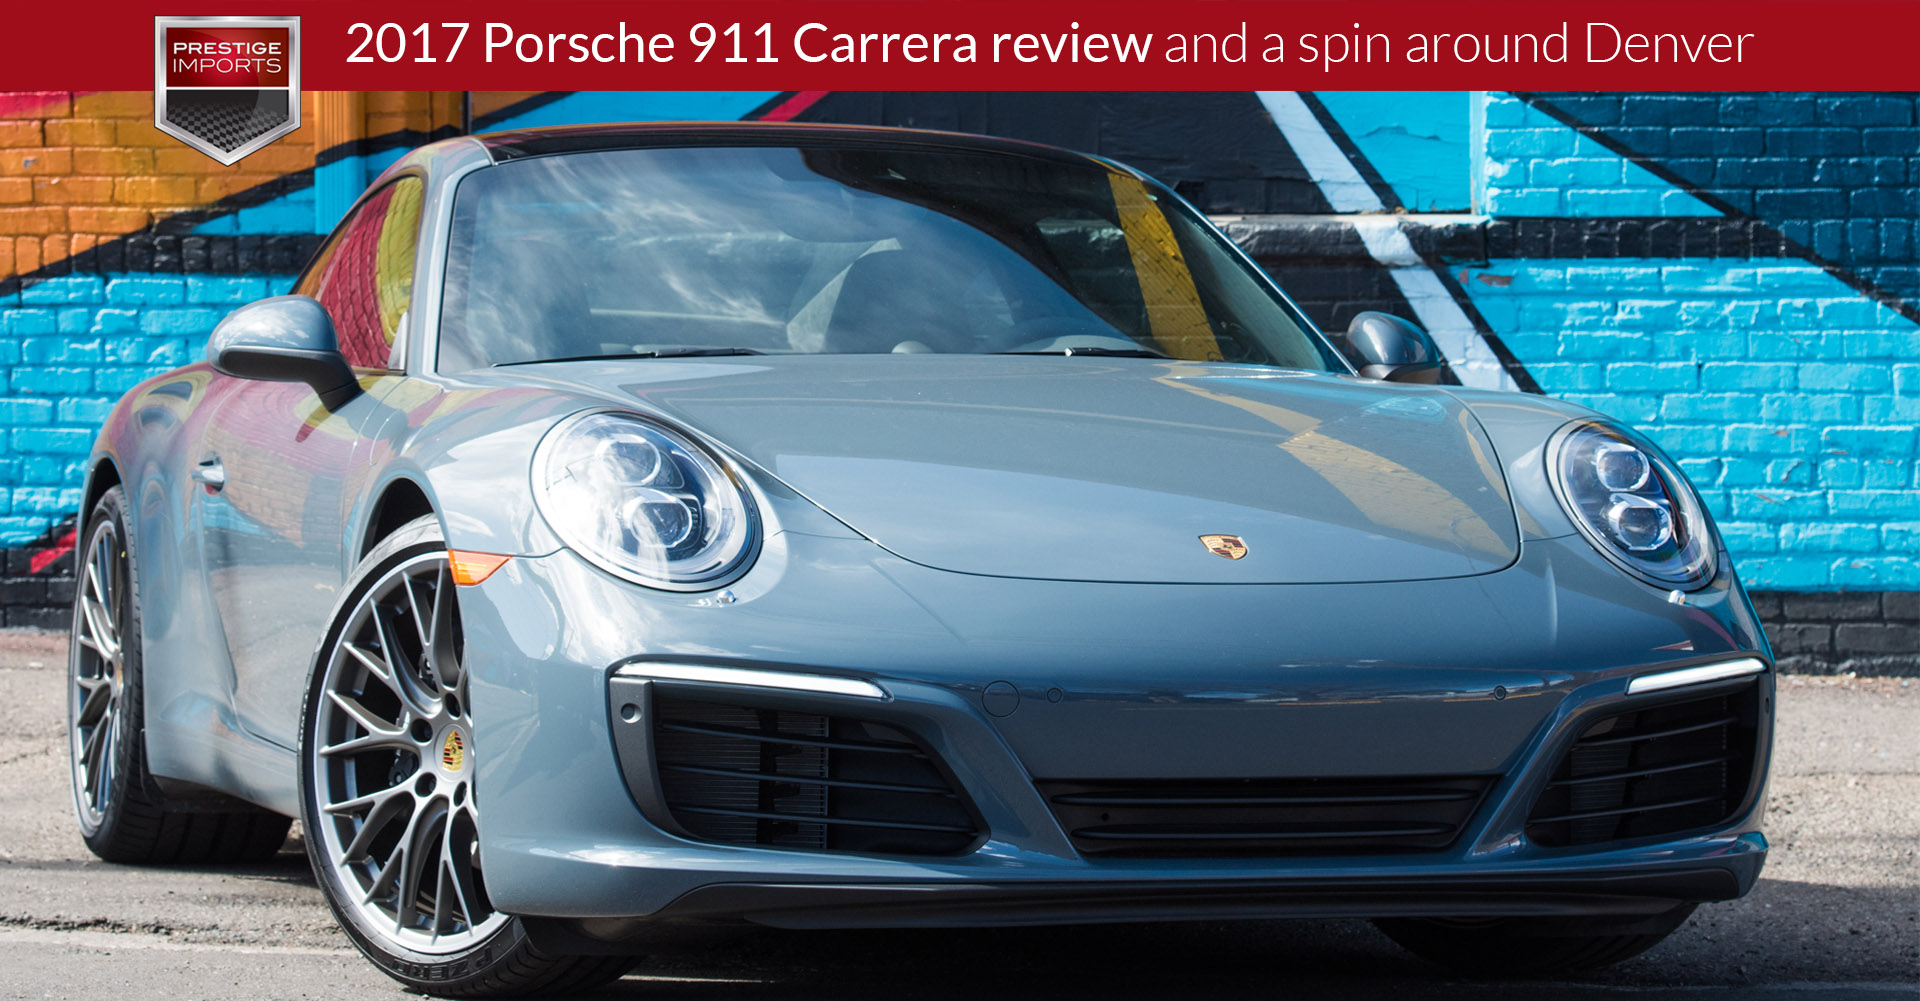 A new 2017 Porsche 911 Carrera parked in front of a colorful mural in Denver, CO.